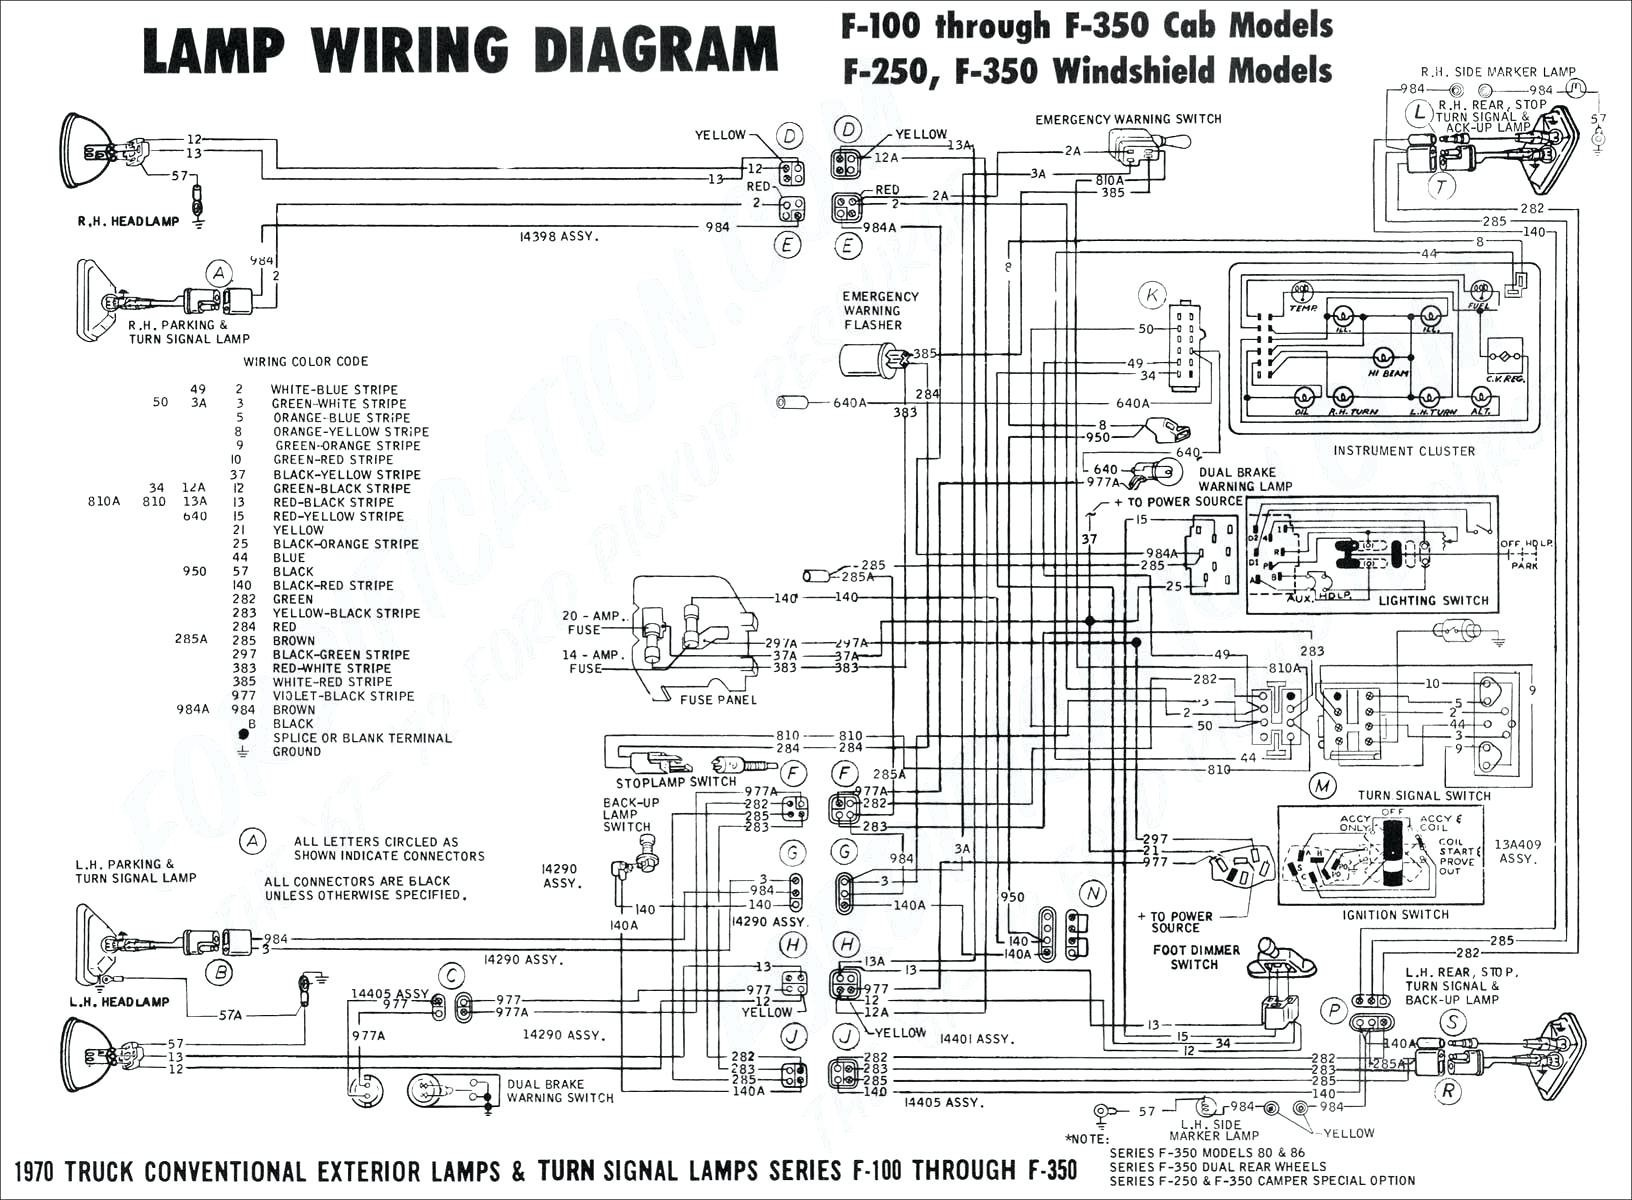 1977 chevrolet truck turn signal wiring diagram